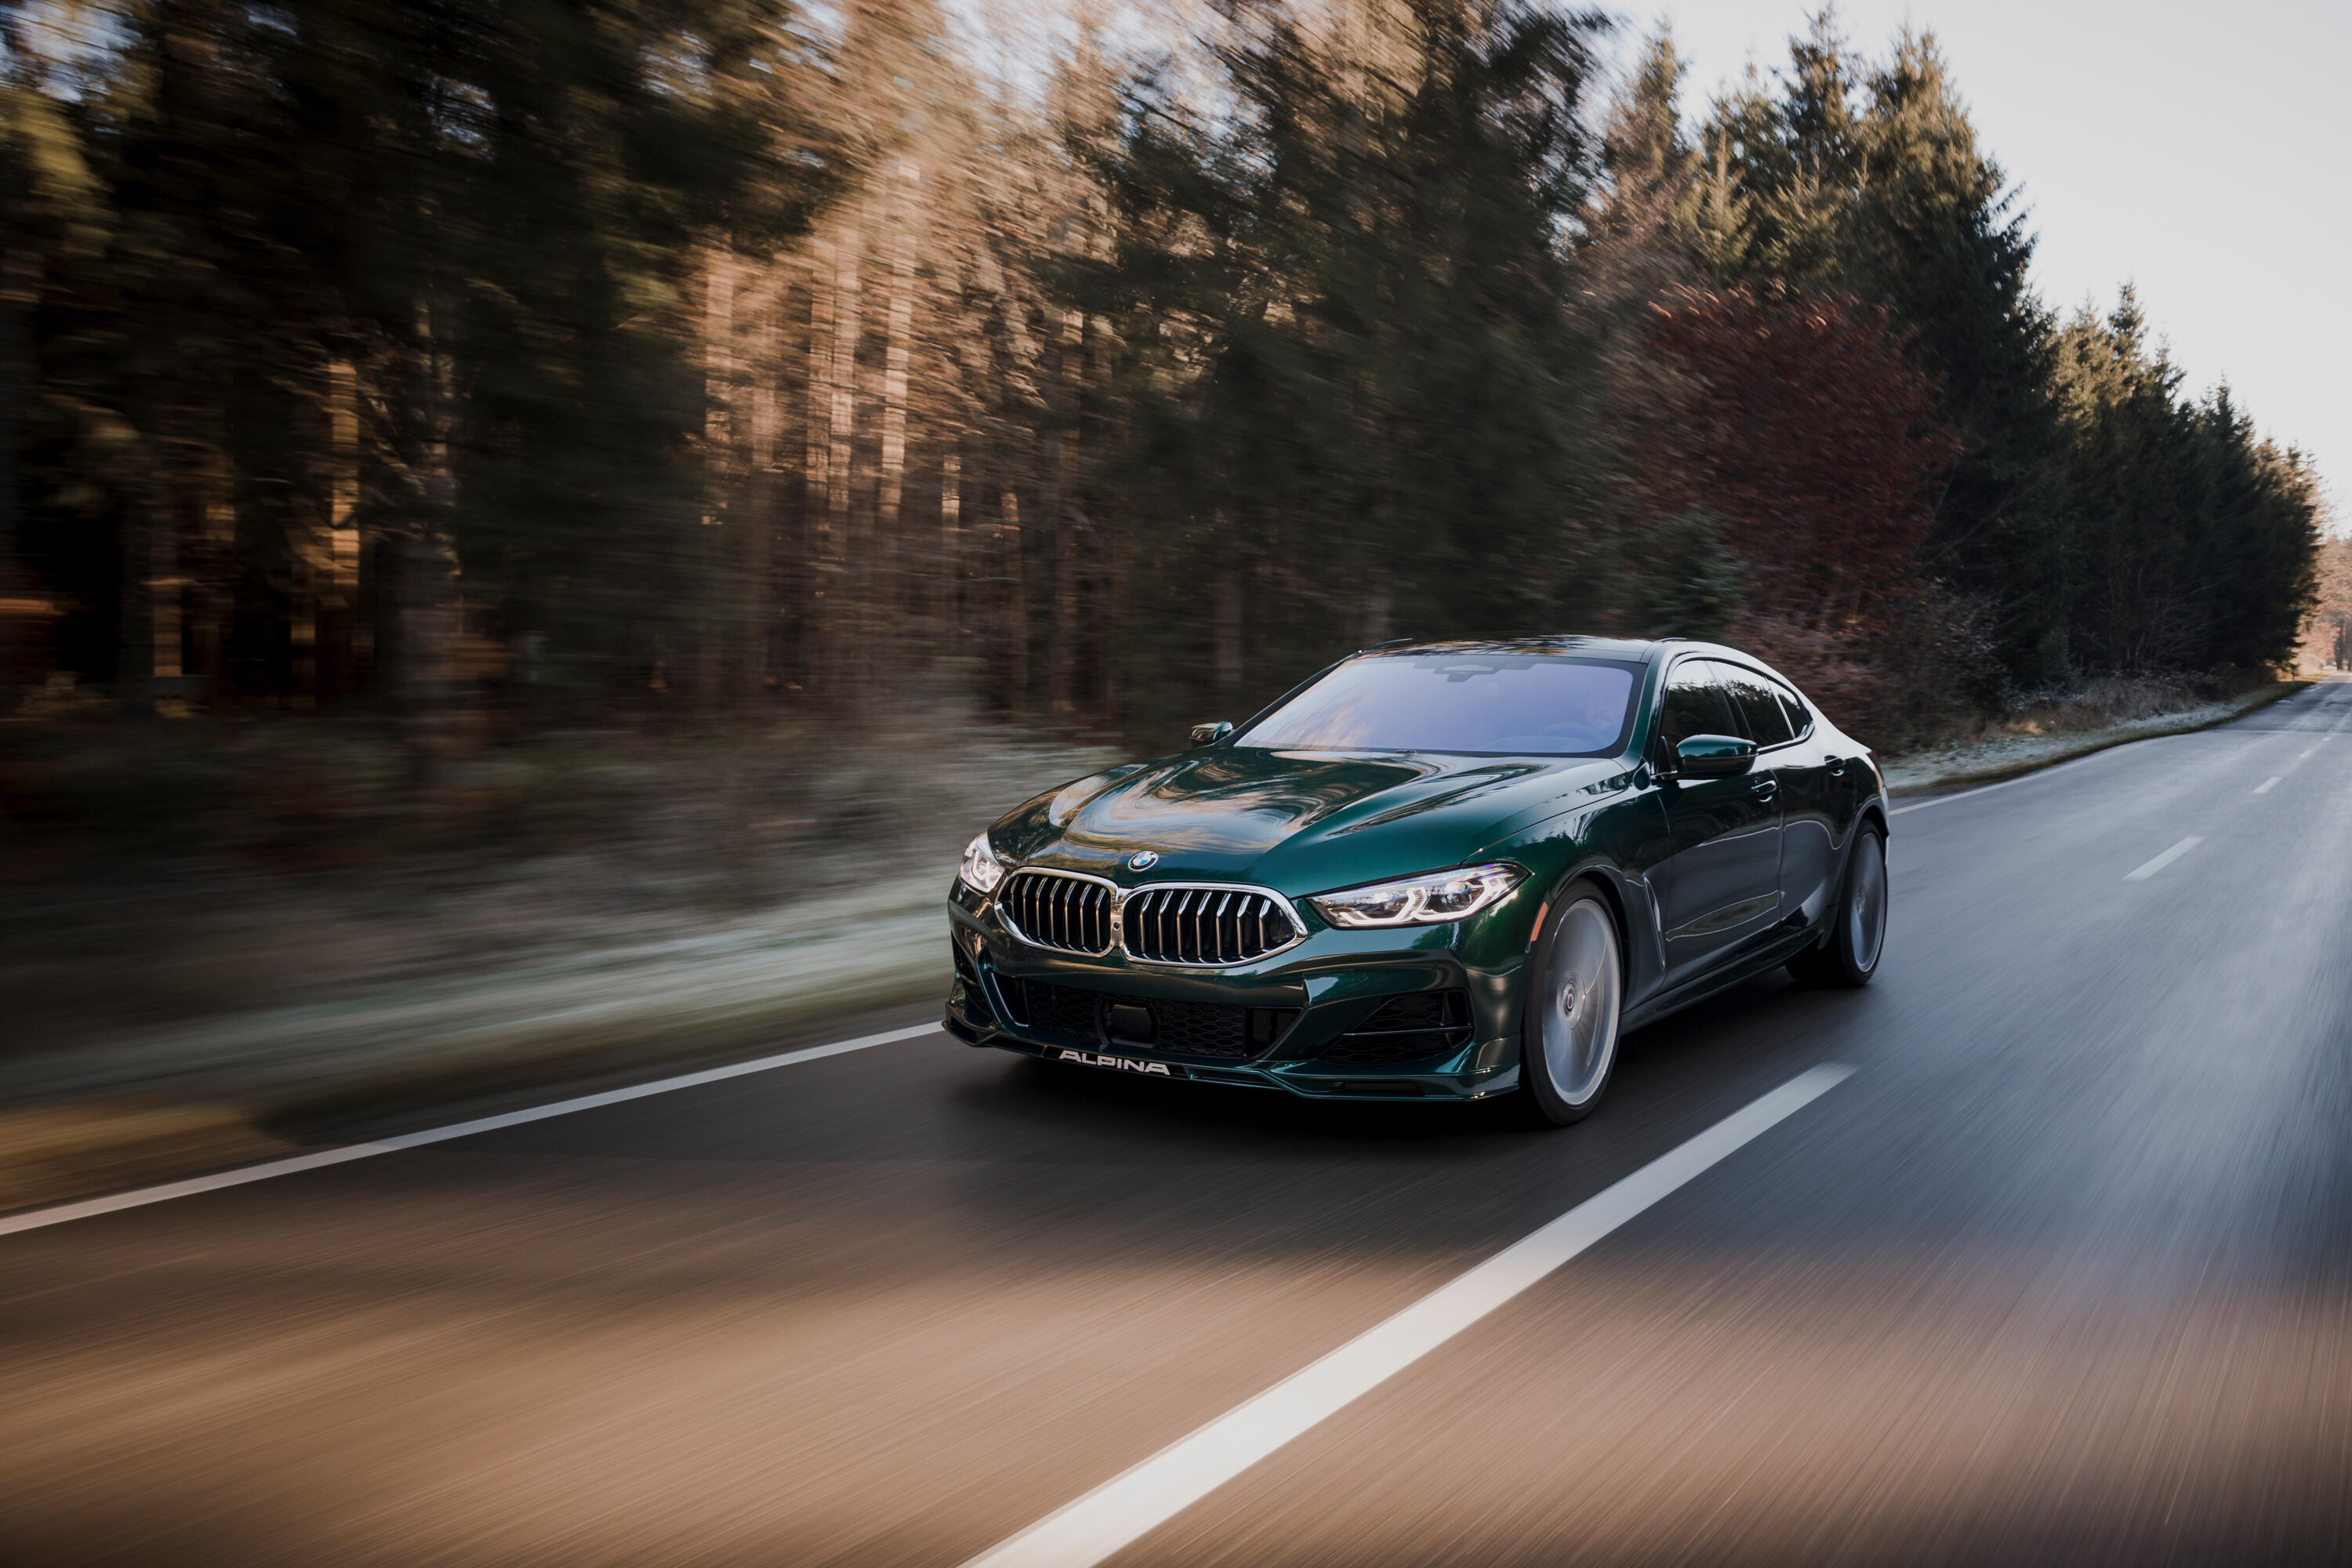 2022 Alpina B8 Gran Coupe is the coolest version of the BMW 8 Series - Roadshow